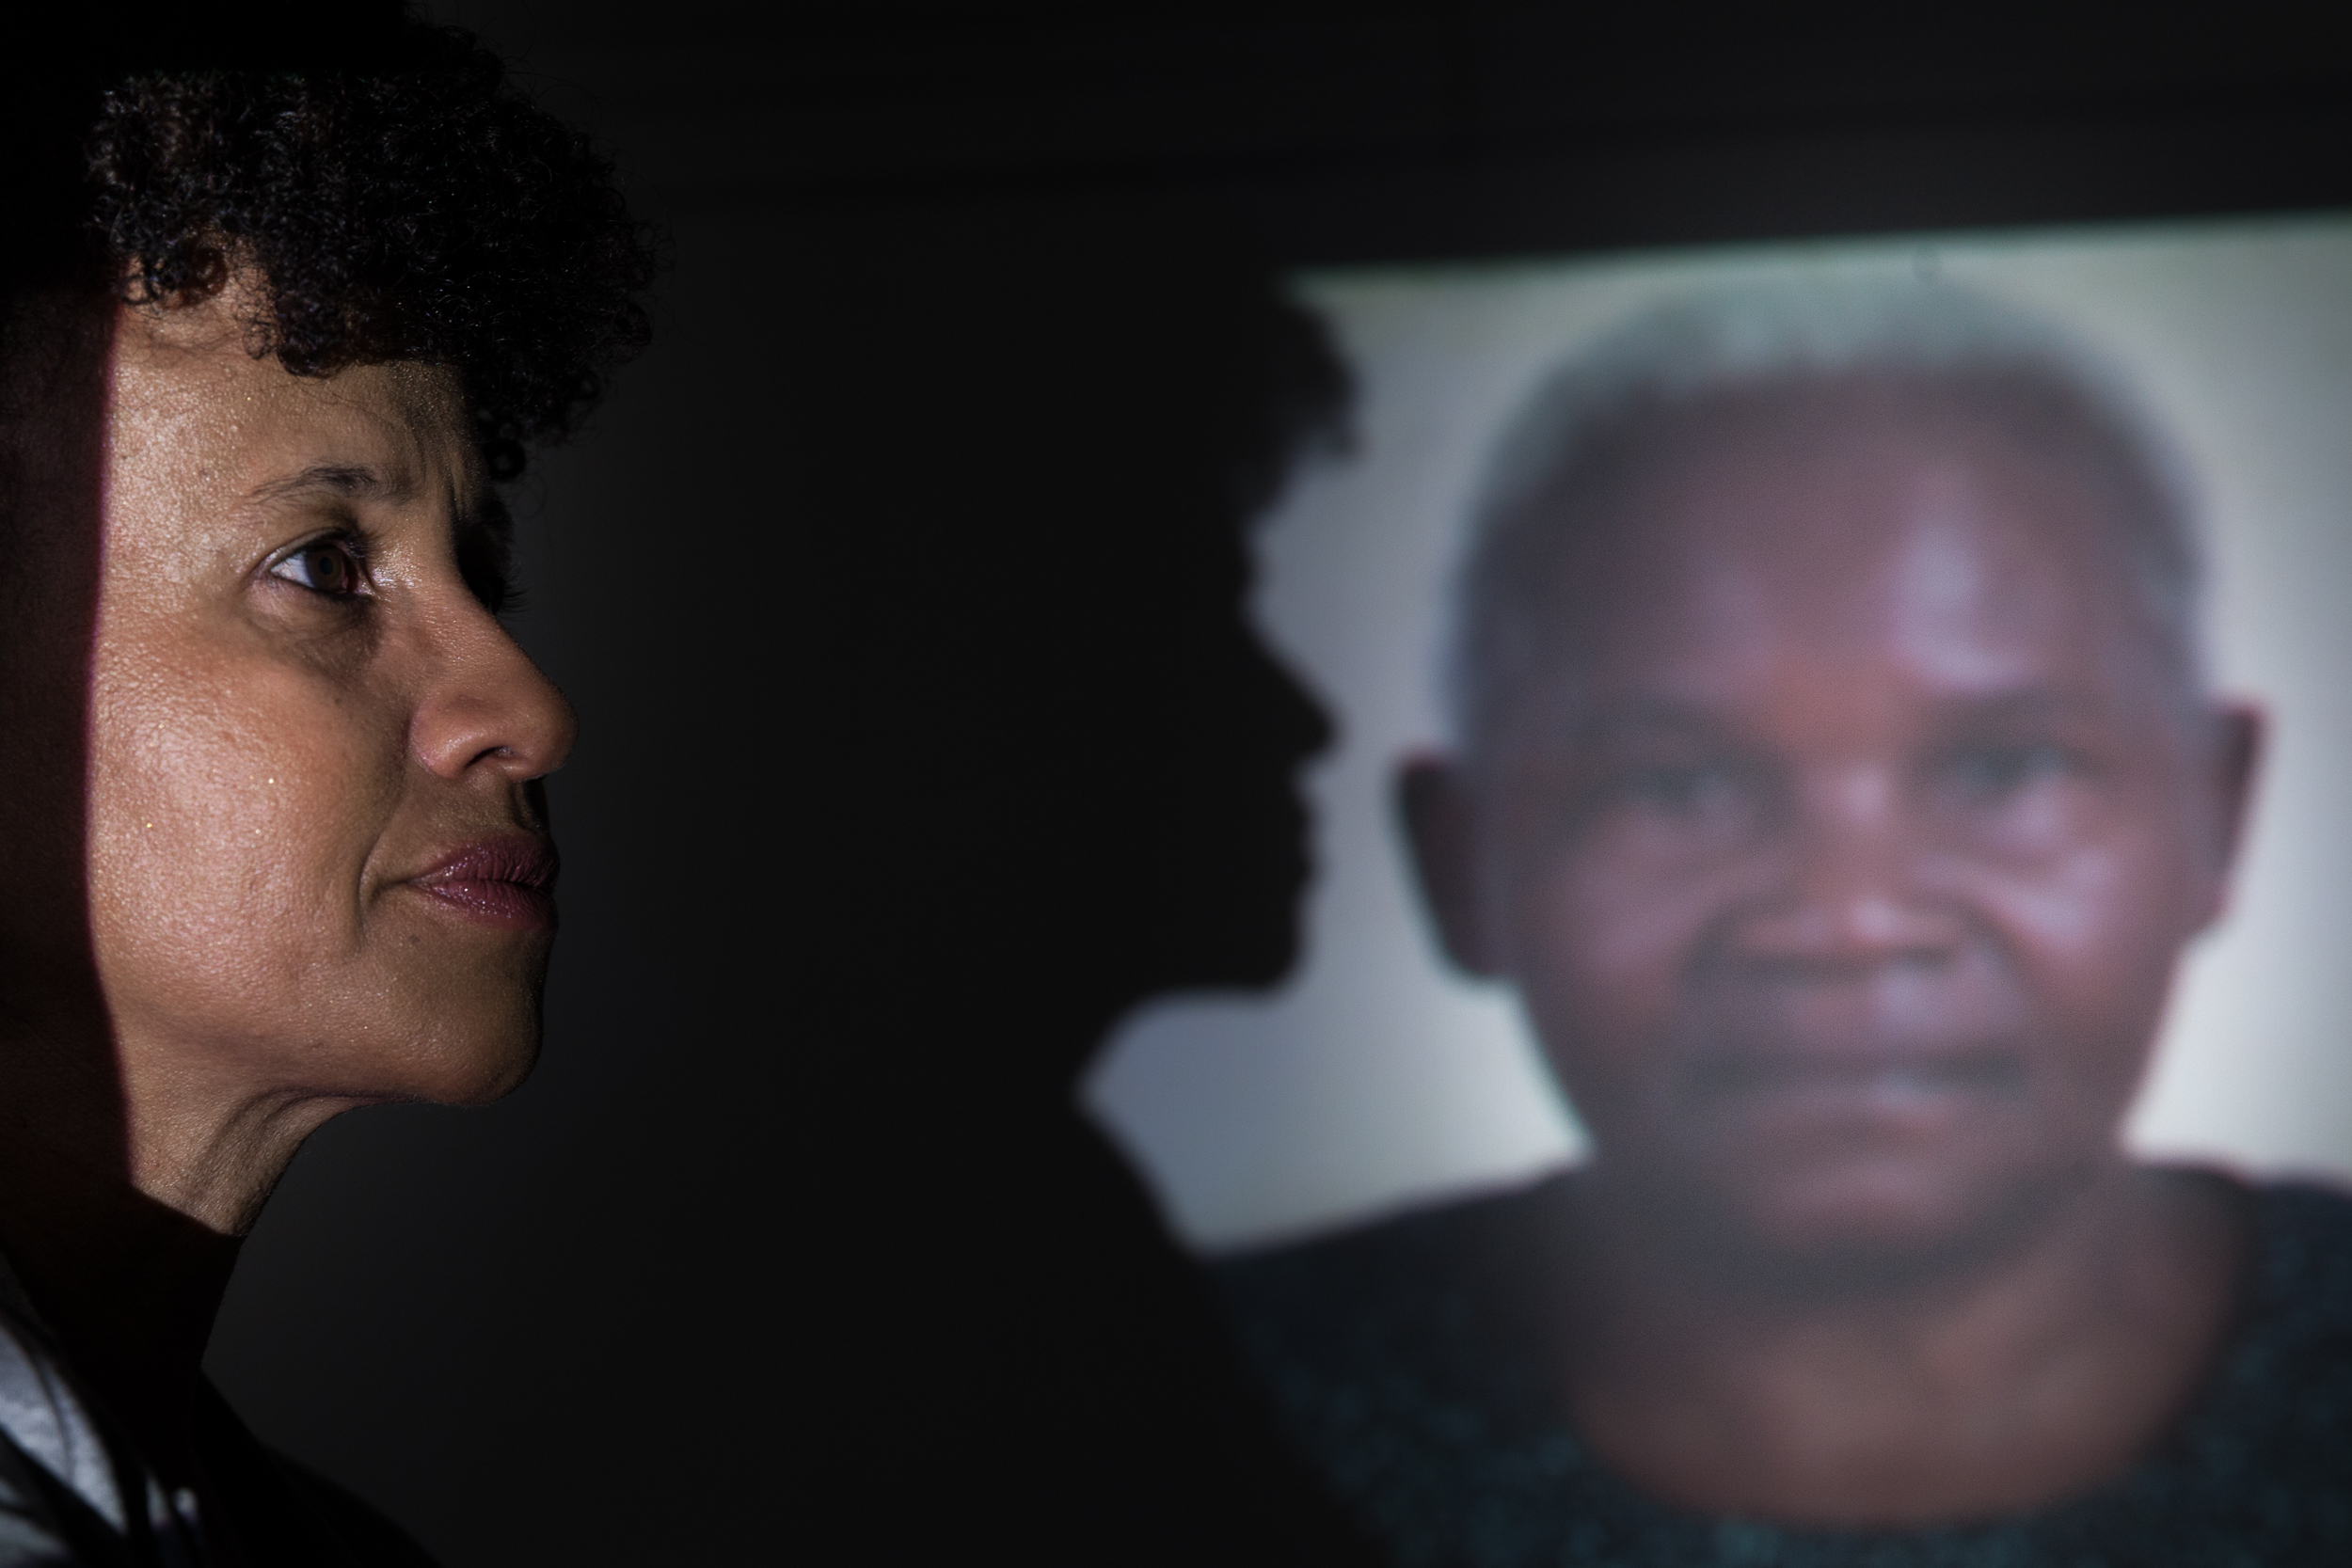 A projected photo of a black woman with short, white hair. On this projected photo, another woman's shadow appears. In the foreground is the woman casting the shadow, standing in profile: a black woman with short, curly black hair.